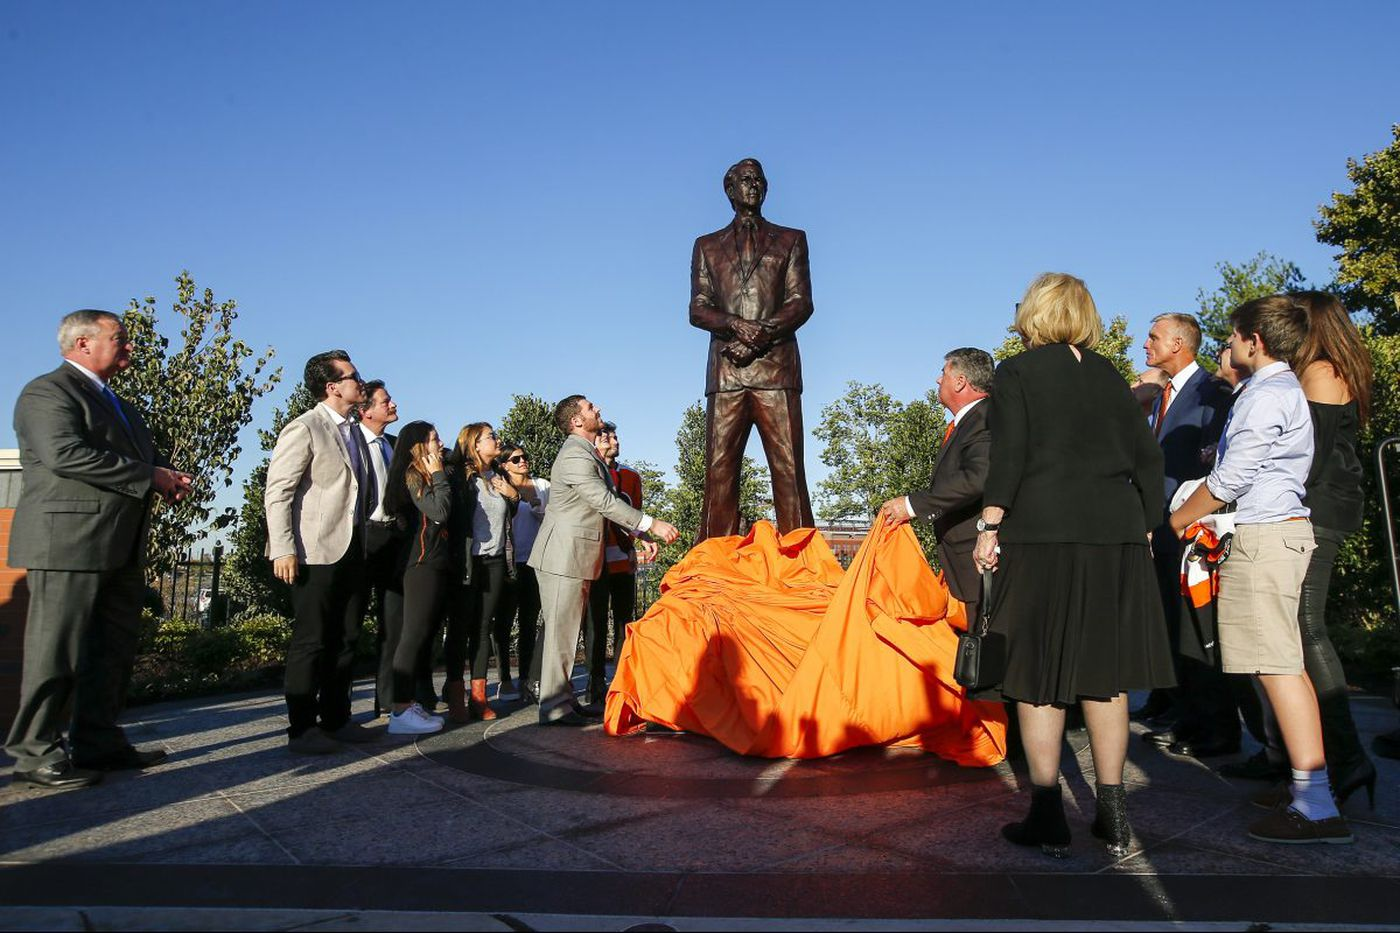 Ed Snider statue unveiled for Flyers' 'consummate ball of energy'